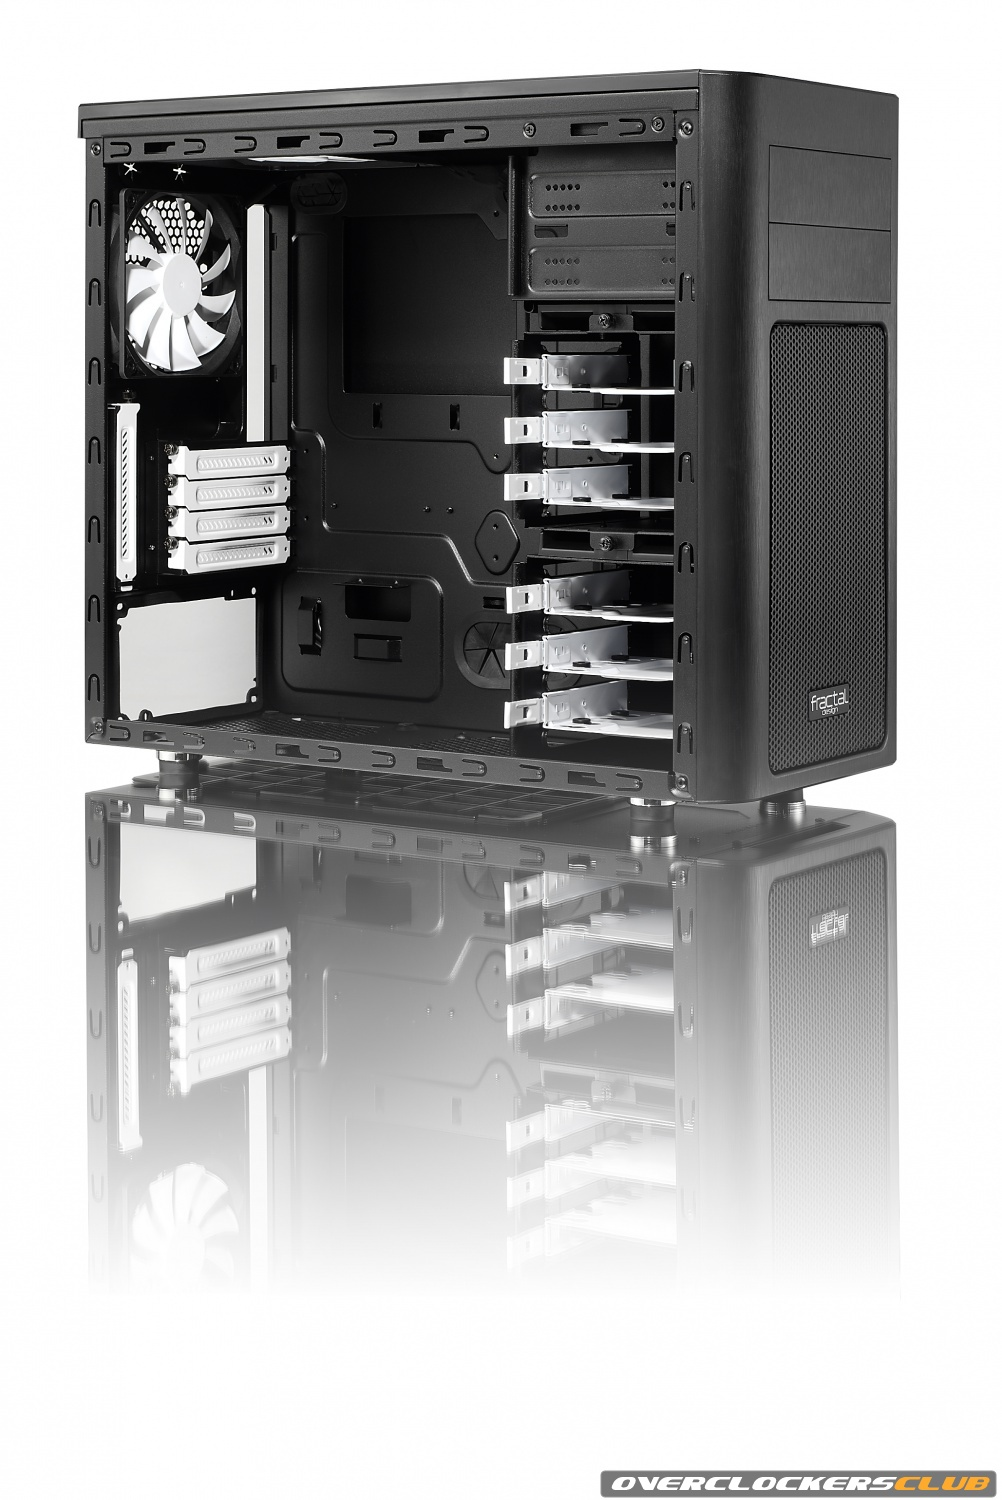 Fractal Design Shows Pair of Cases at Computex